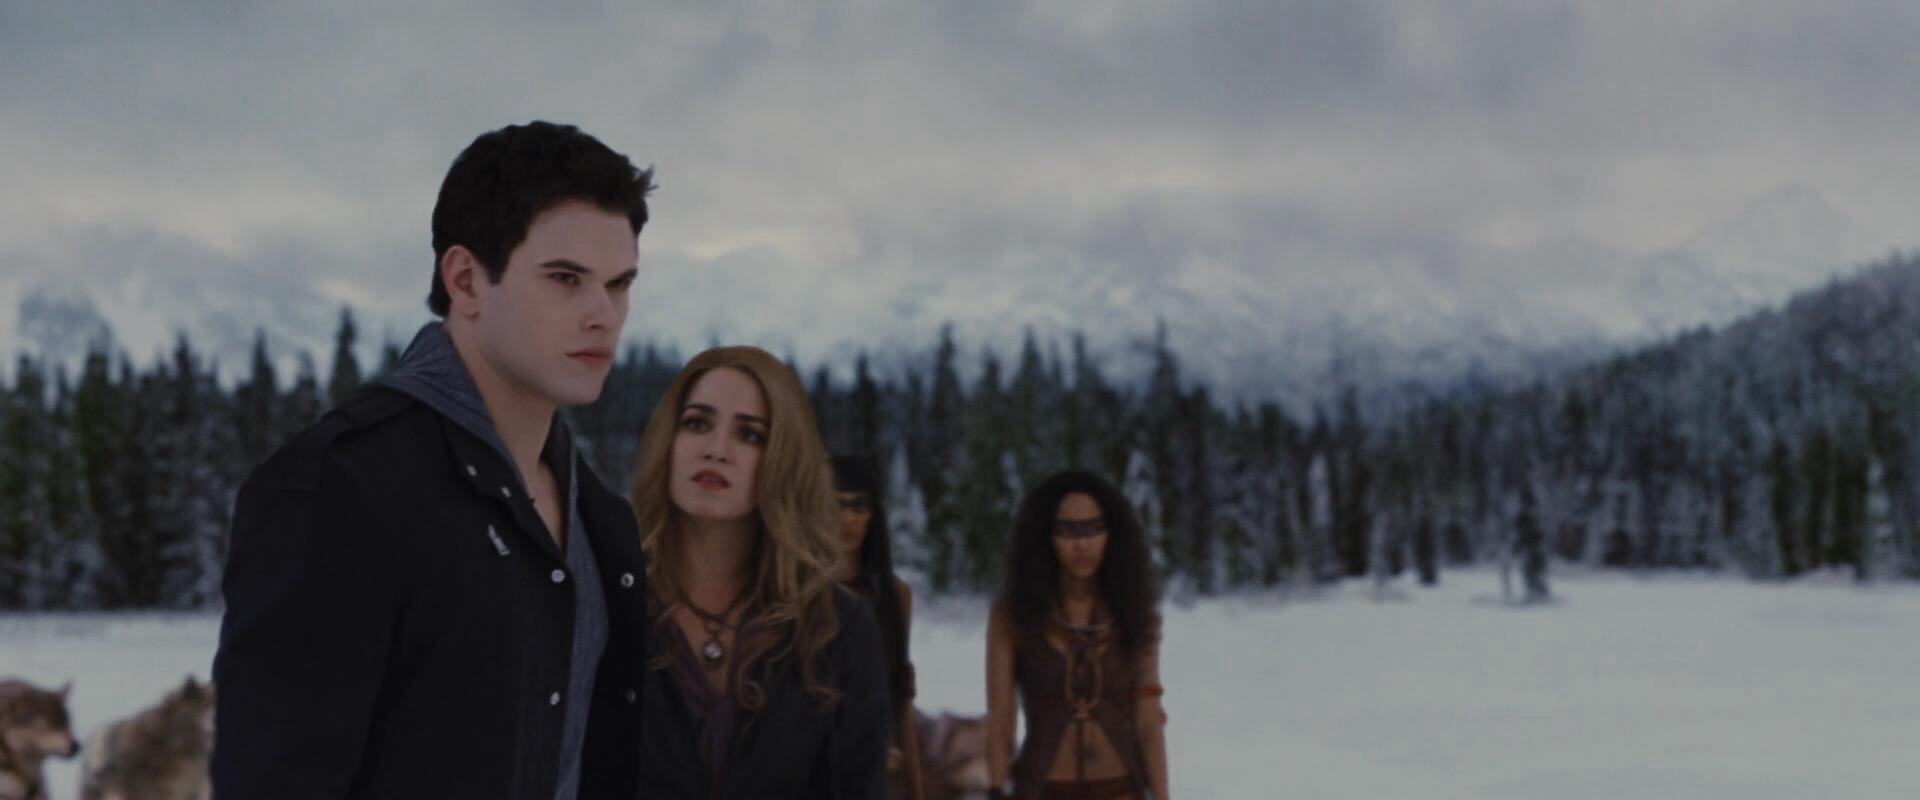 Twilight Saga - The Beauty & The Bear {Rose ♥ Emmett} #11 ...